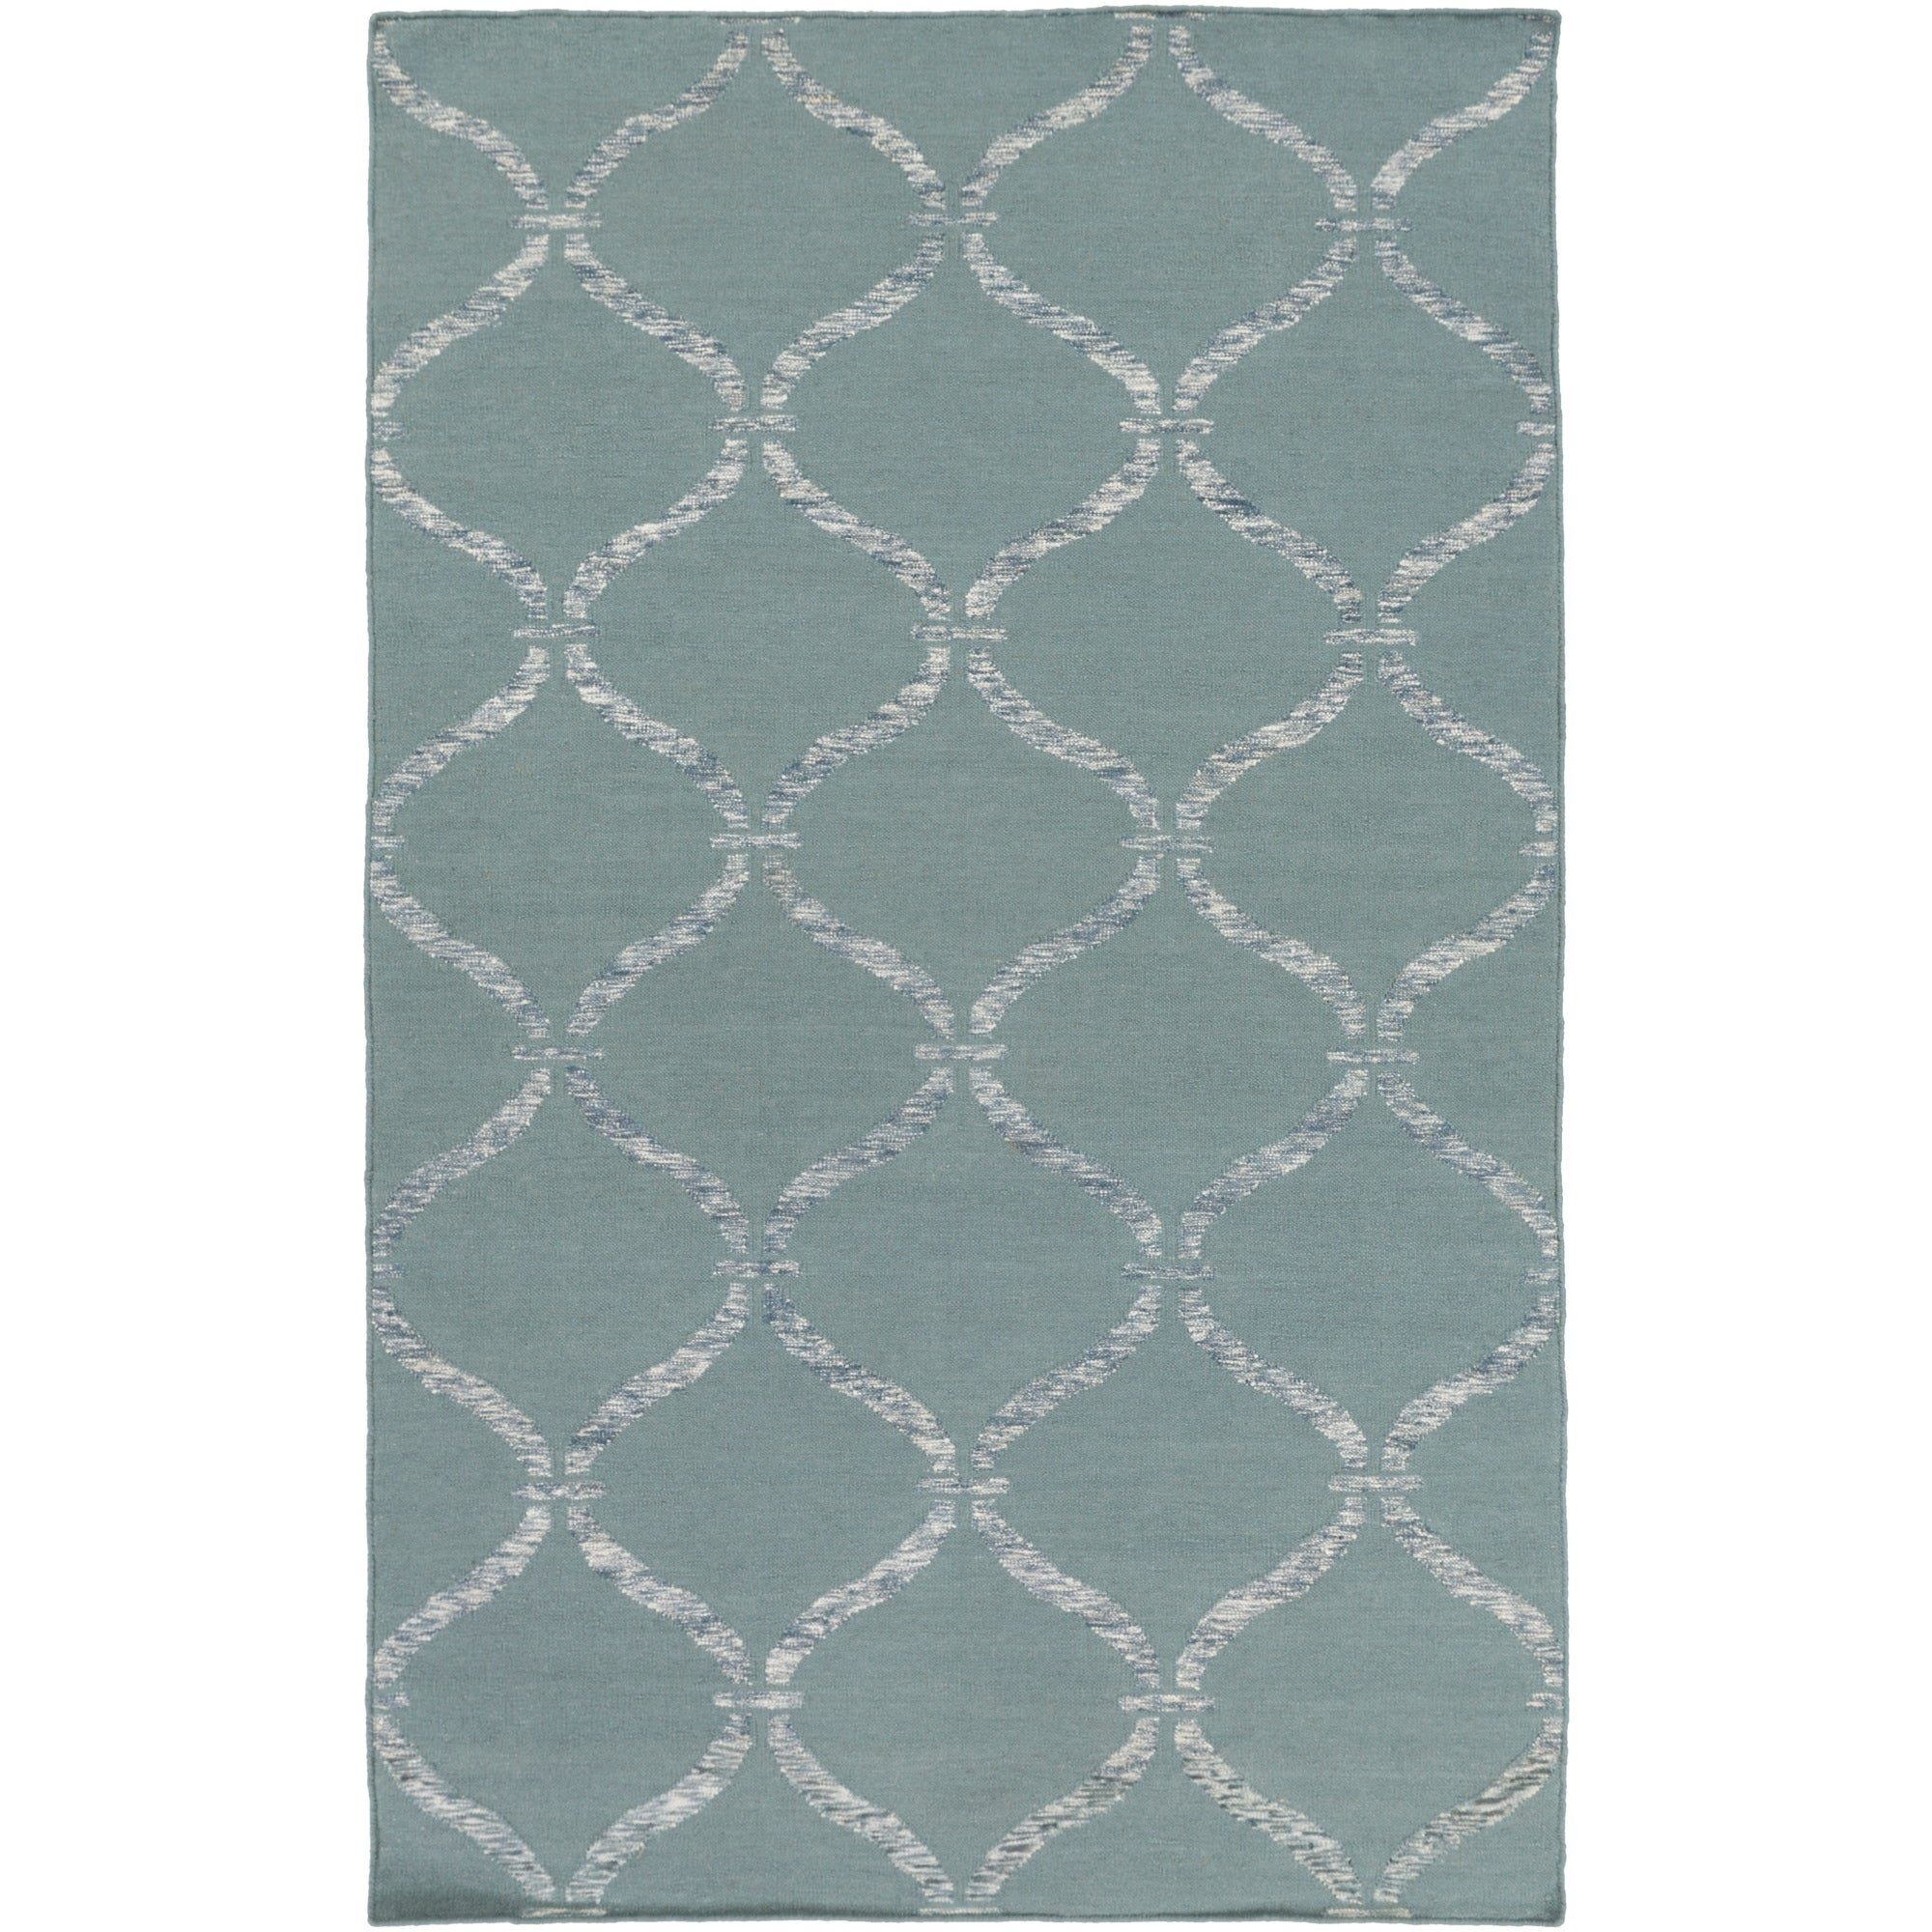 Blue Wool 6 X 9 Area Rugs Online At Our Best Deals